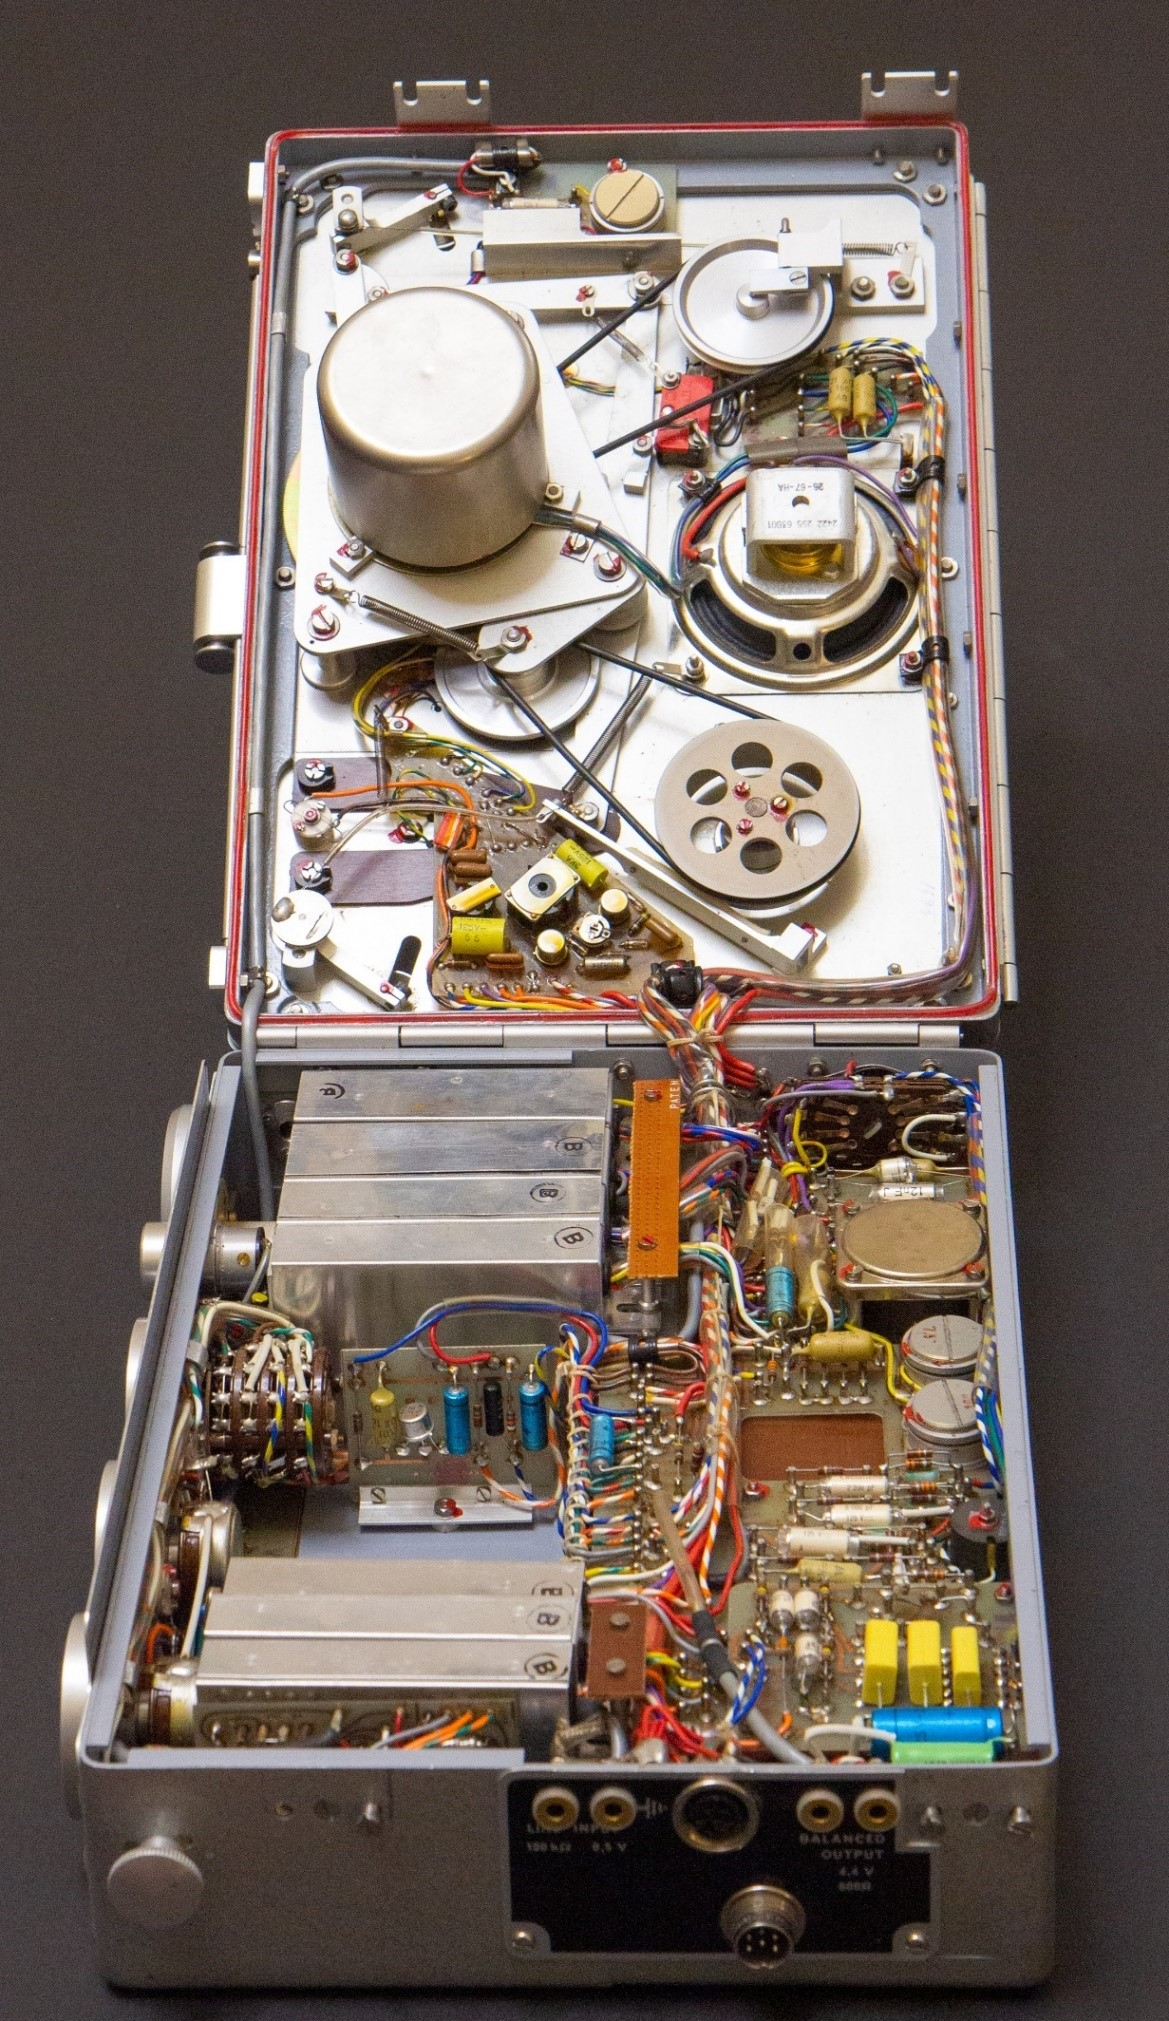 what the Nagra looks like inside the machine. There are many coloured wireds, cogs and components